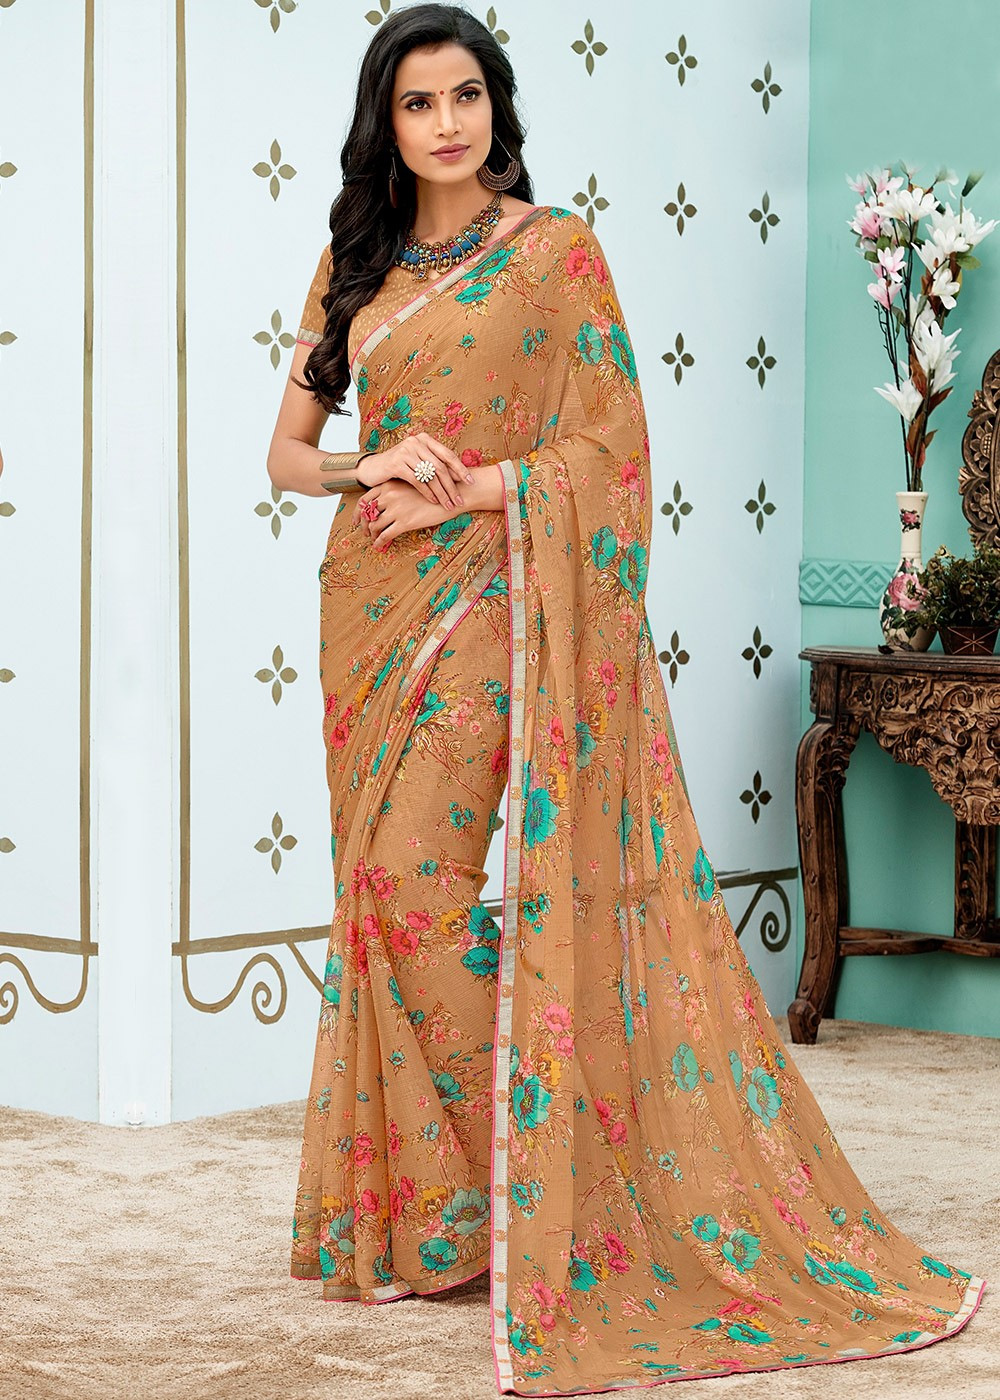 565641656dc9eb Beige Chiffon Floral Printed Saree. Tap to expand